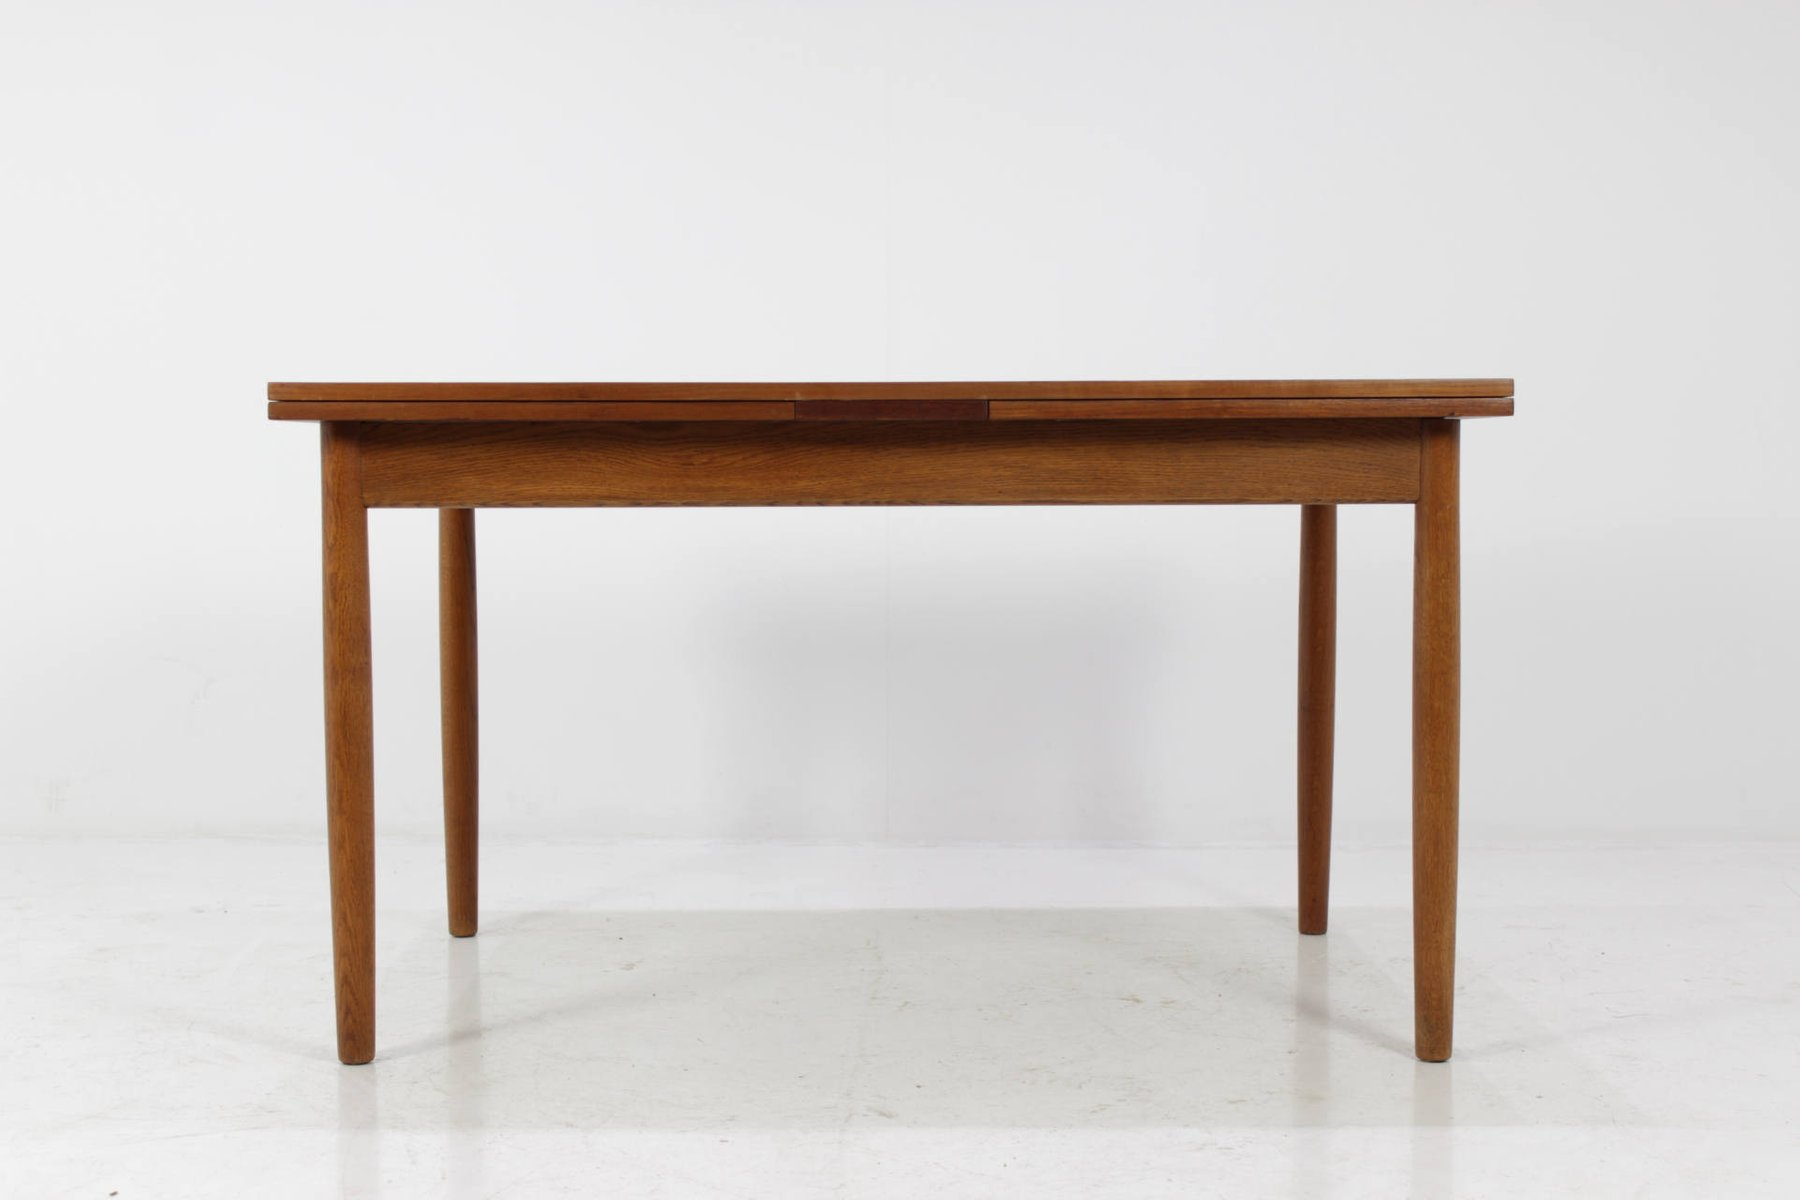 Mid Century Danish Teak Dining Table With Extension Leaves 1960s For Sale At